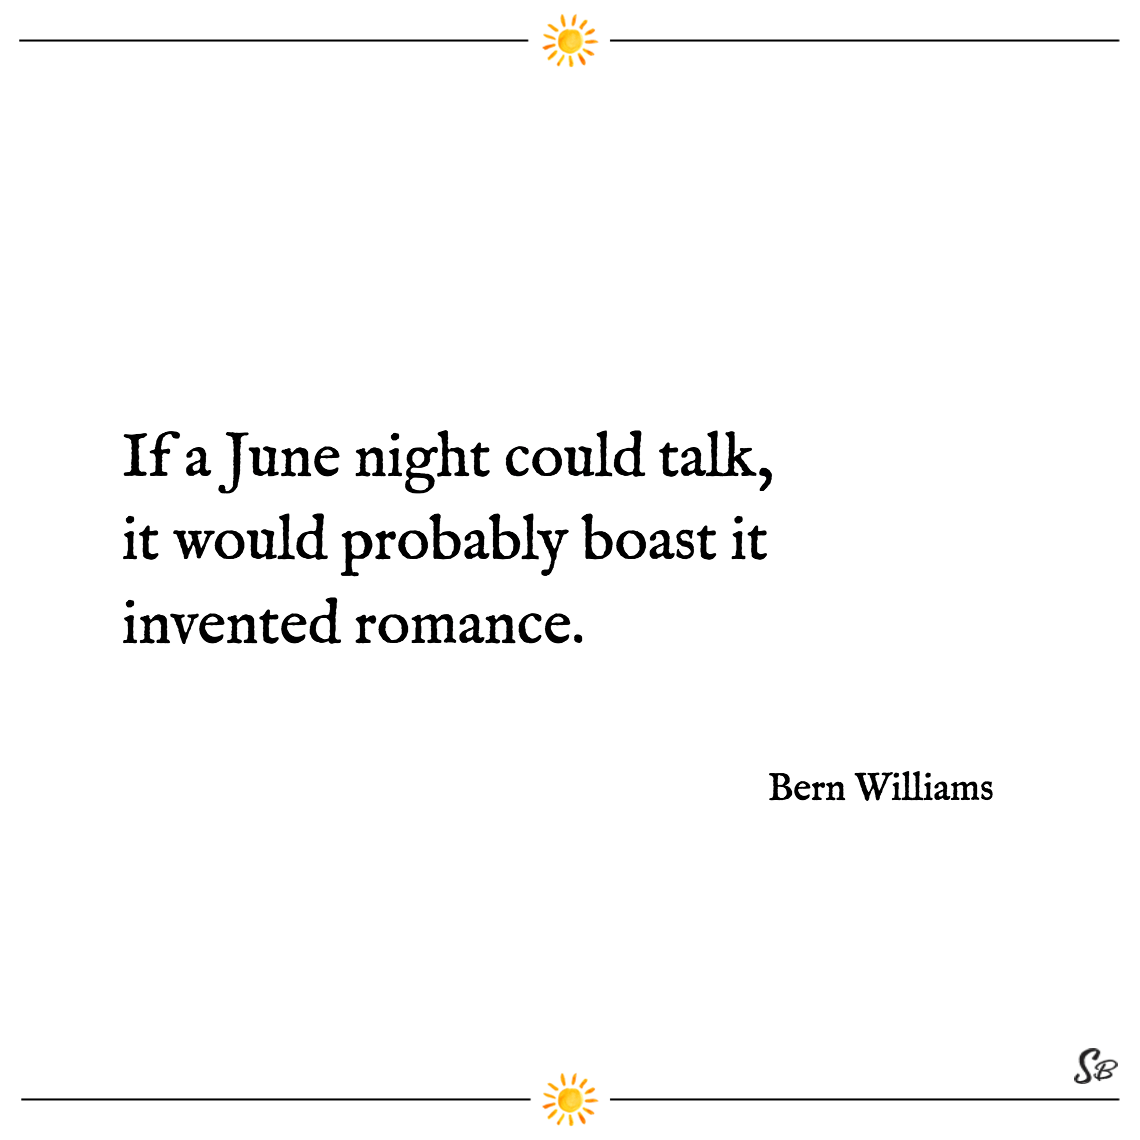 If a june night could talk, it would probably boast it invented romance. bern williams